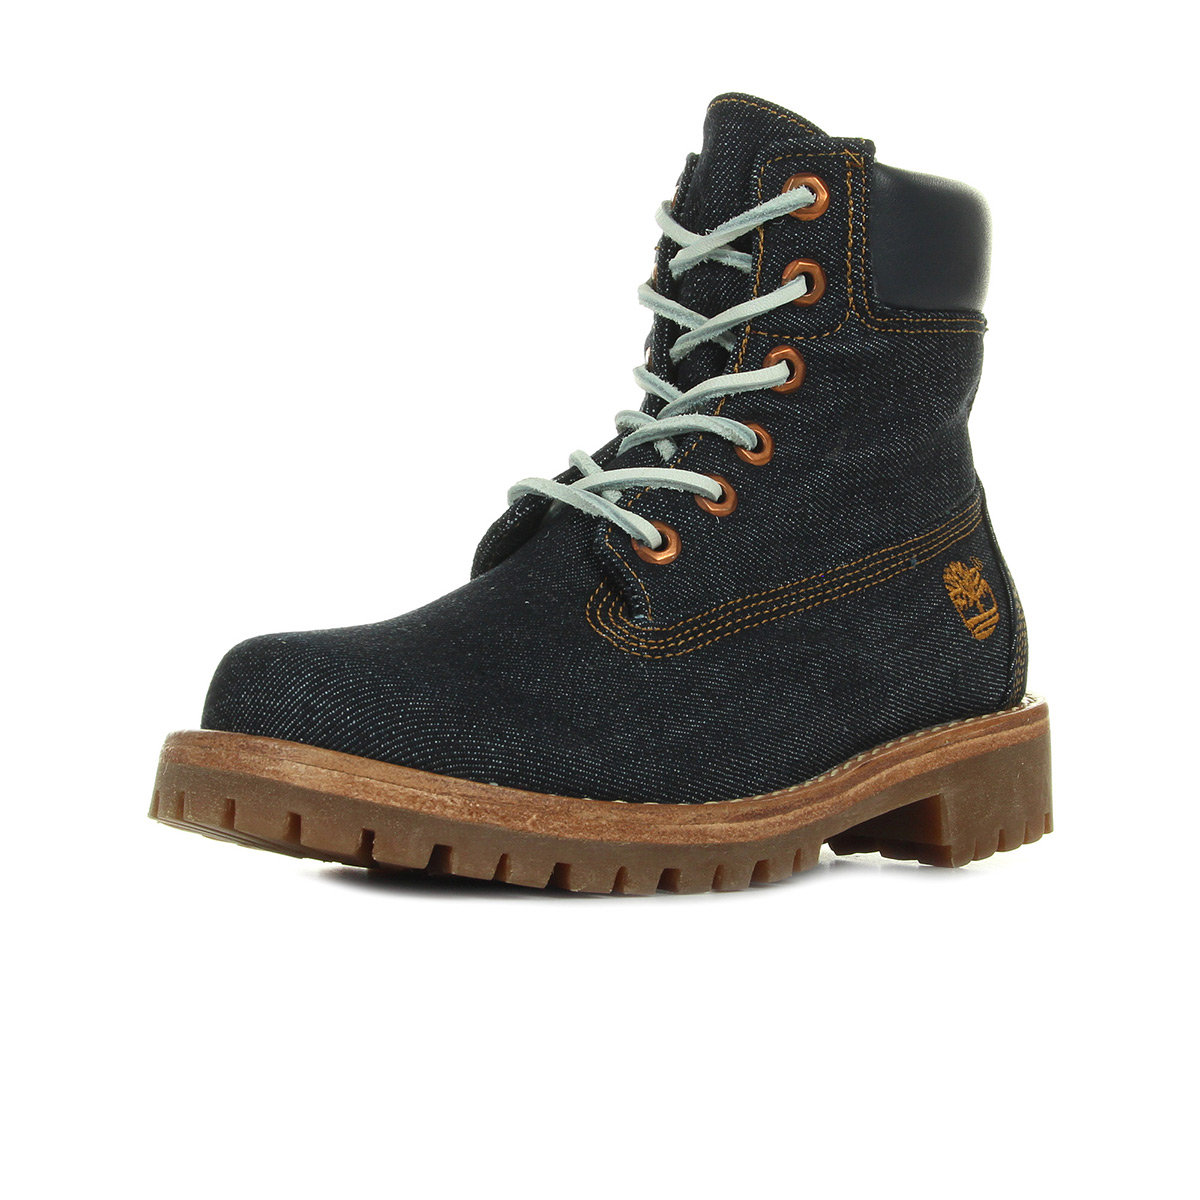 Timberland Boots Ltd Fabric 6in Dk Denim